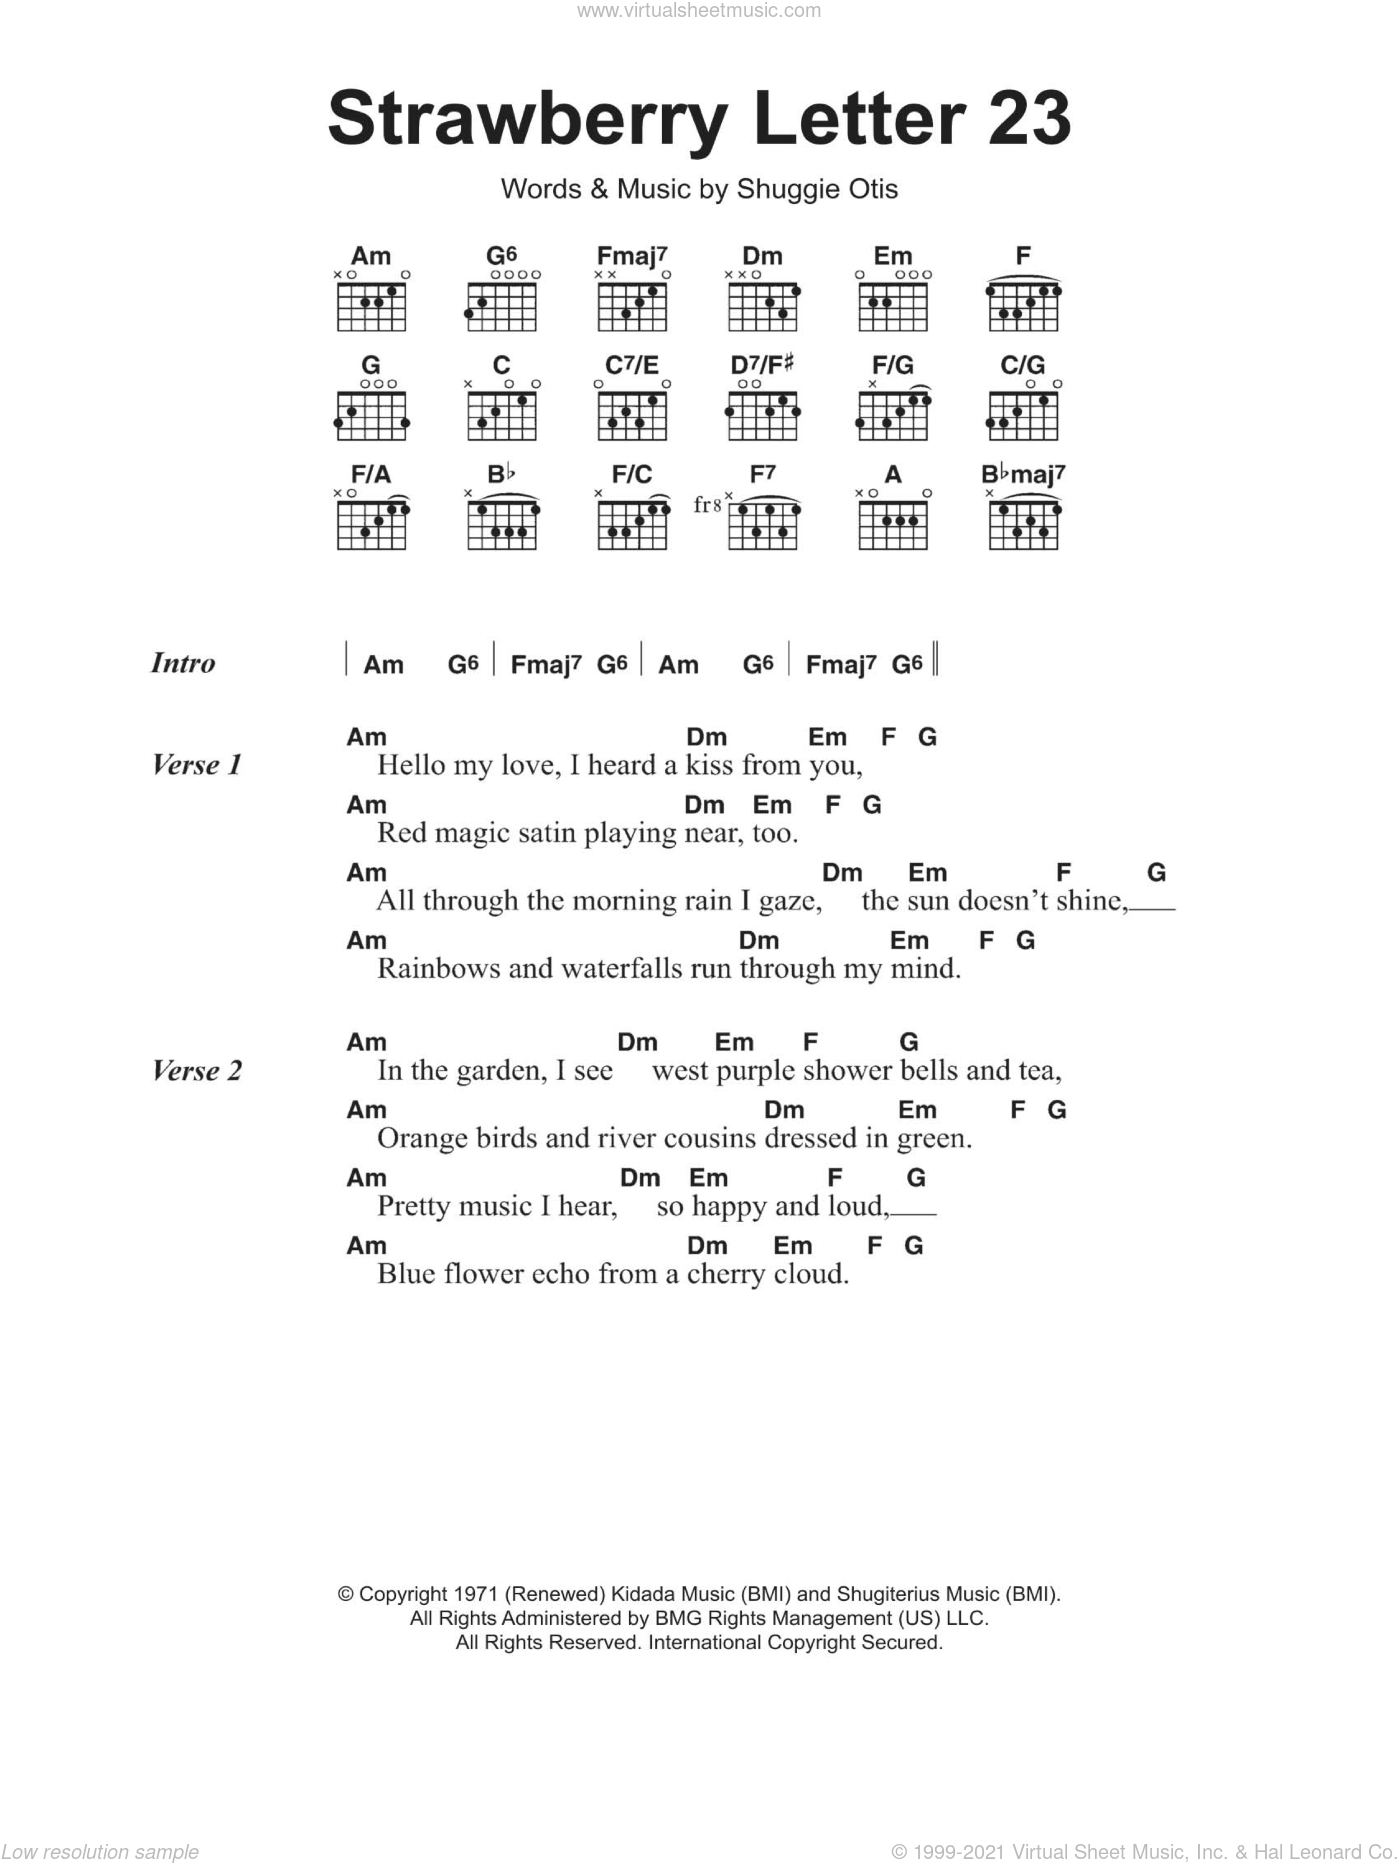 Strawberry Letter 23 sheet music for guitar (chords) by The Johnson Brothers, The Brothers Johnson and Shuggie Otis, intermediate skill level